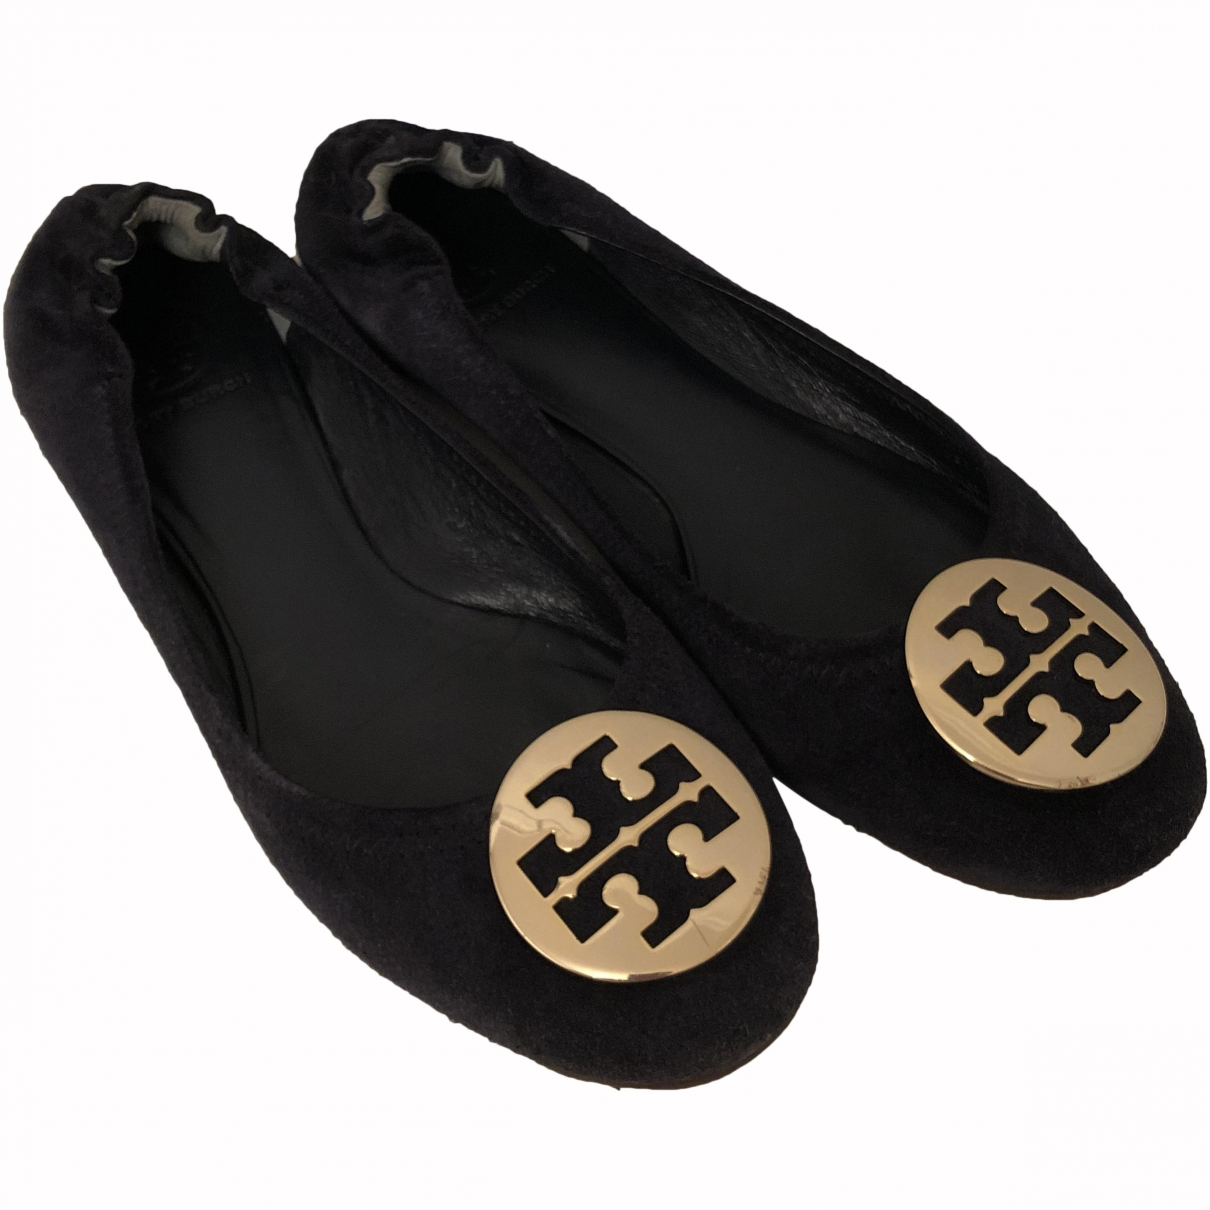 Tory Burch \N Navy Suede Ballet flats for Women 8.5 US